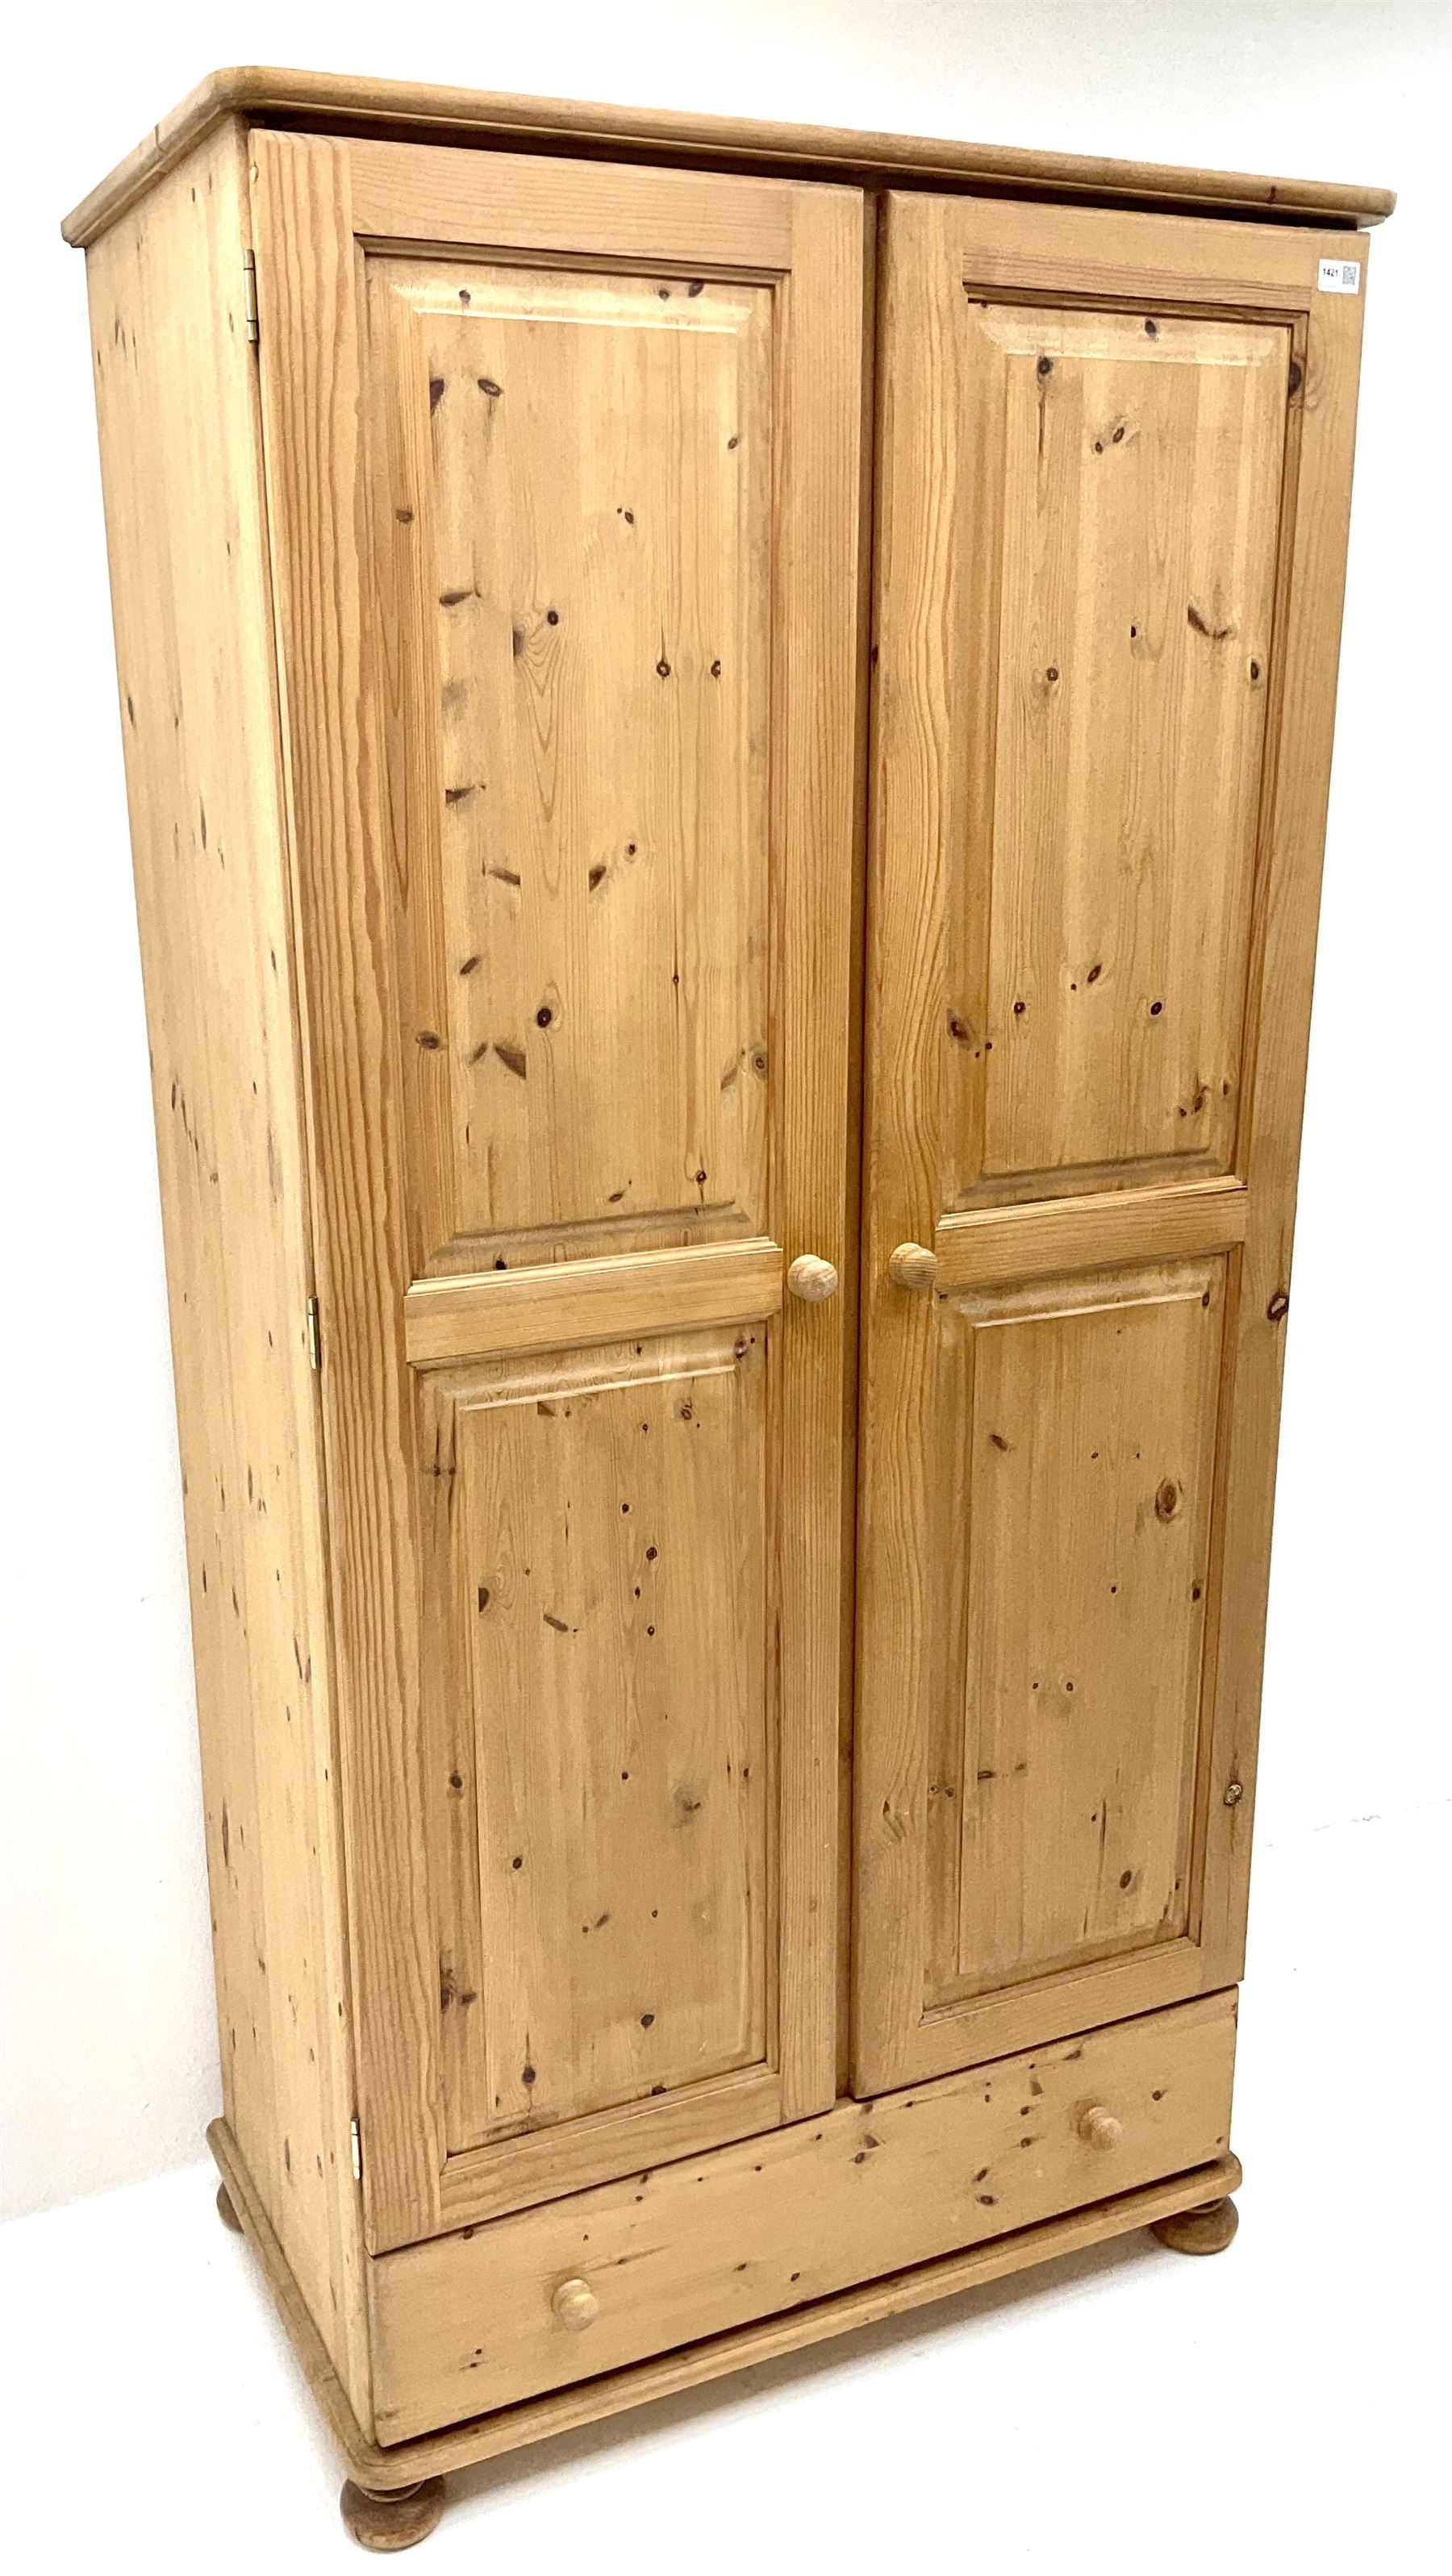 Solid pine double wardrobe - Image 3 of 5